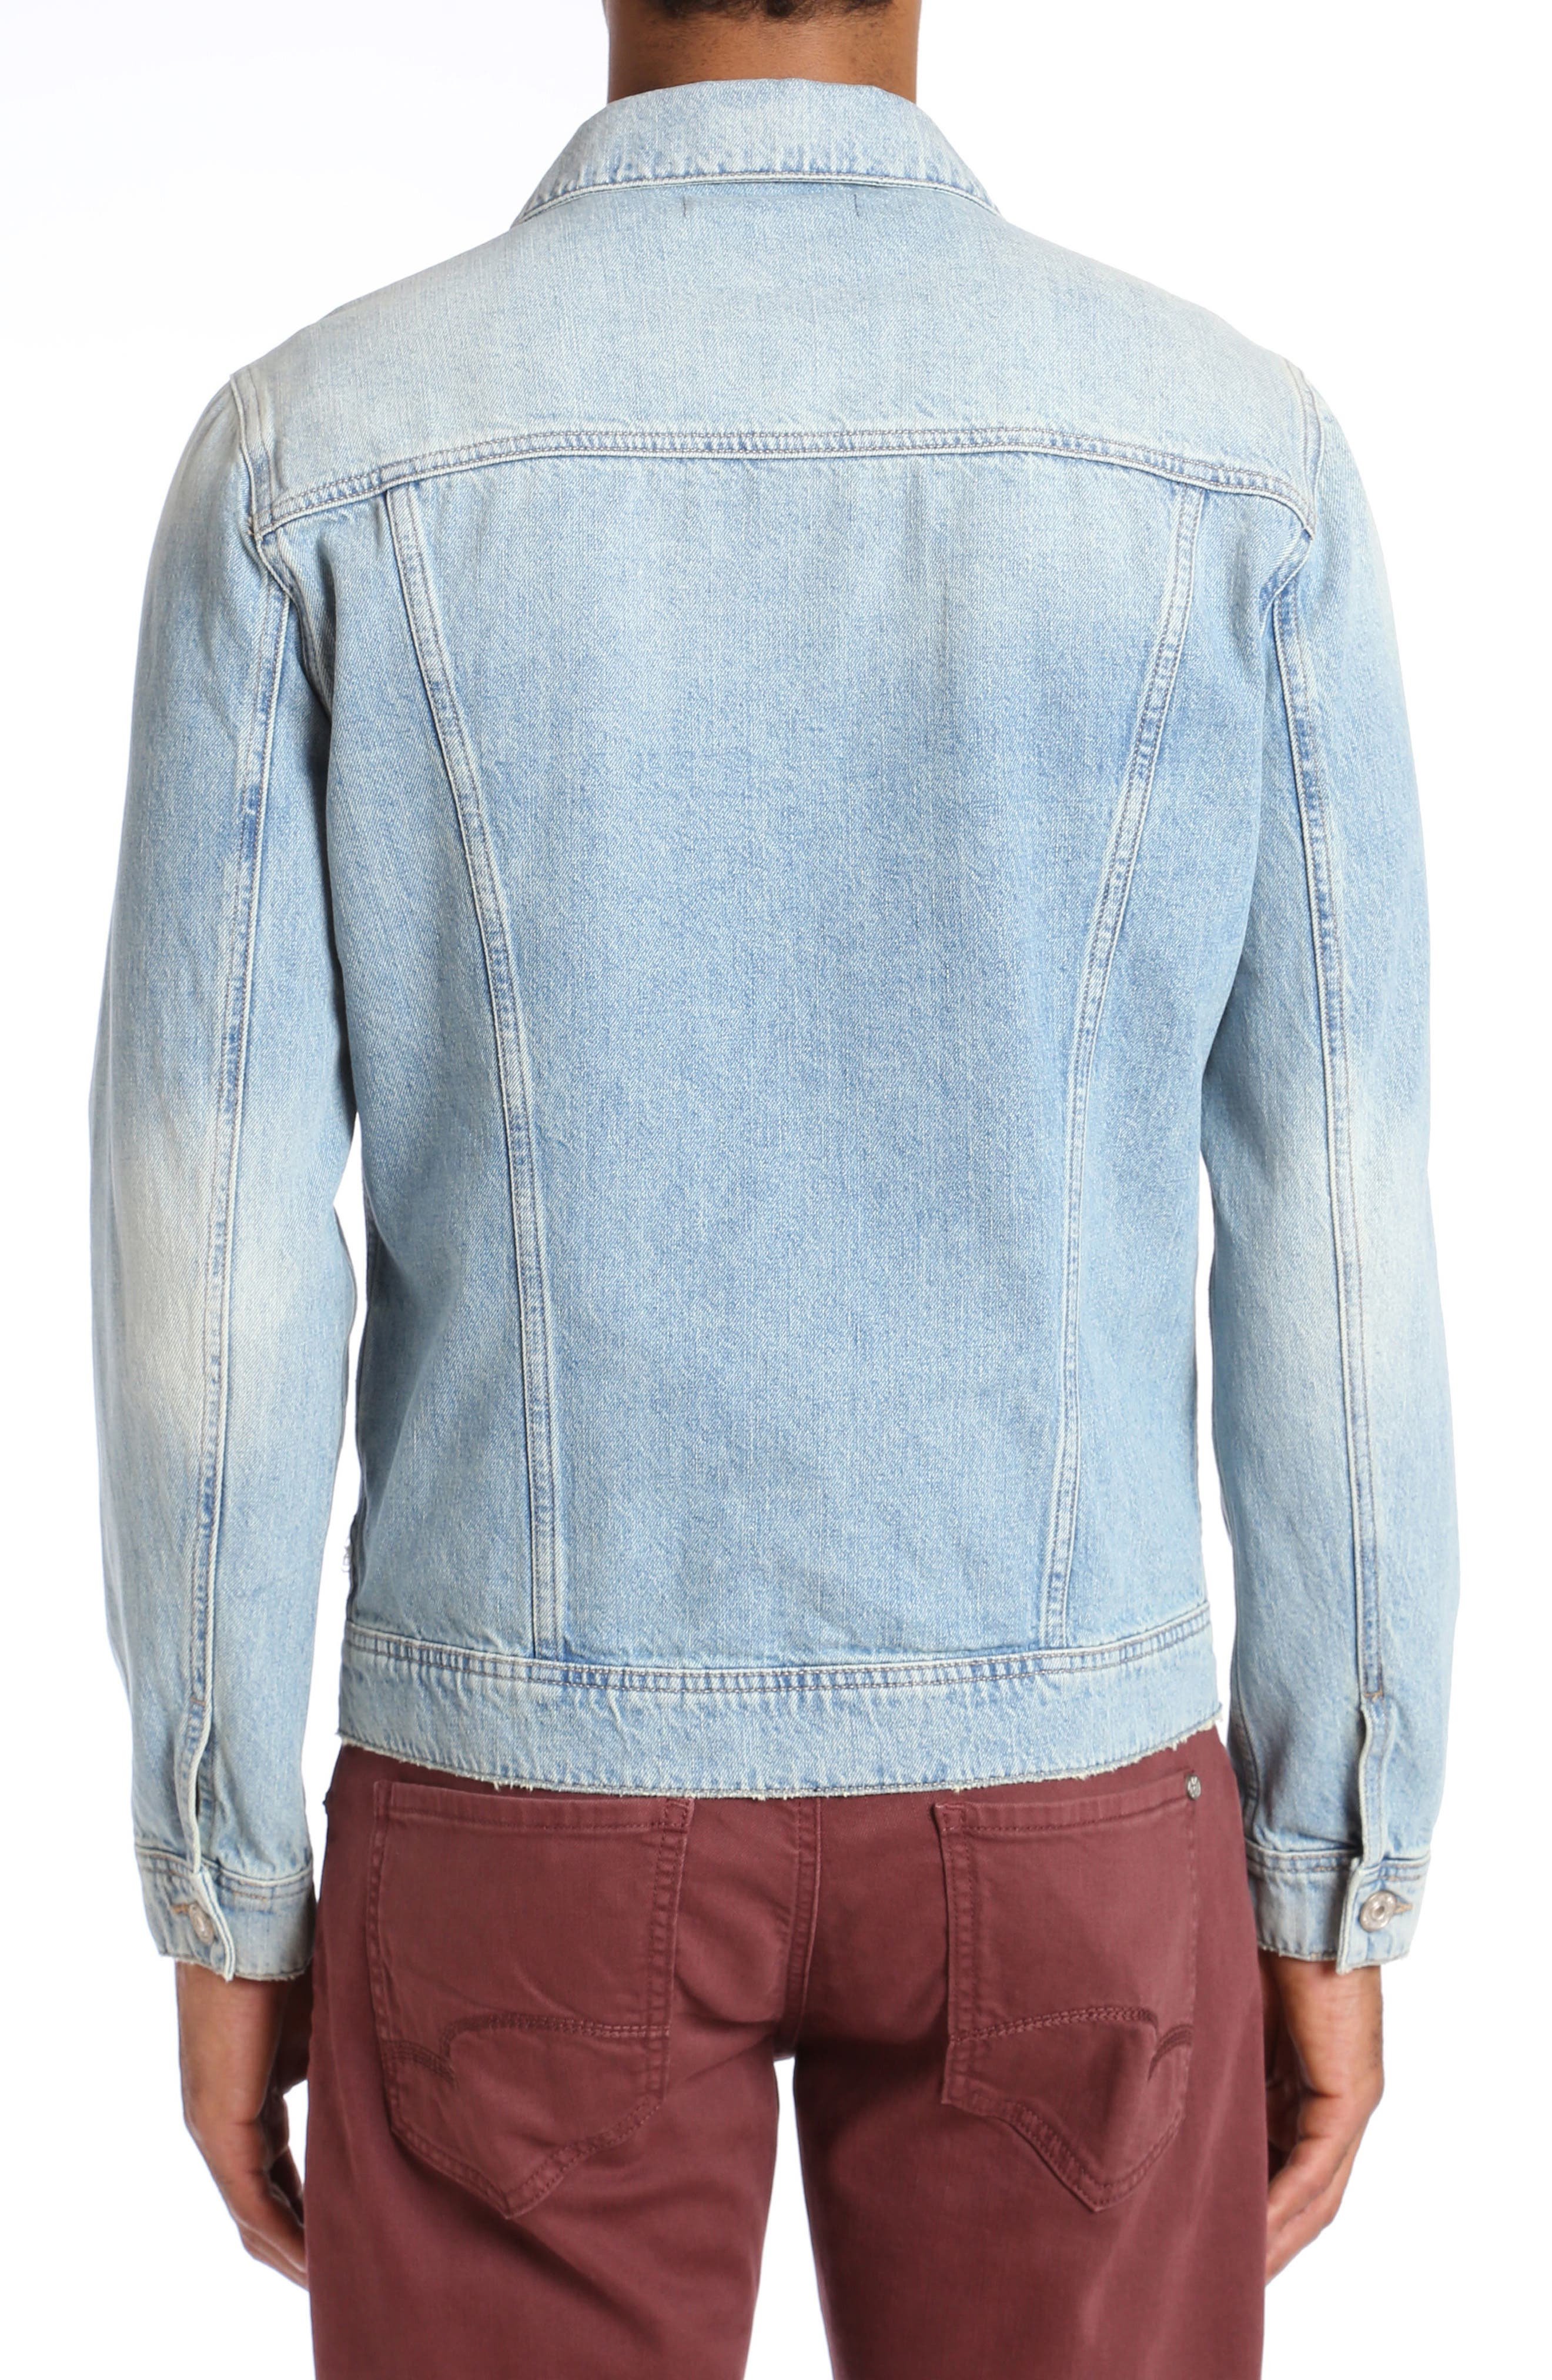 Frank Denim Jacket,                             Alternate thumbnail 2, color,                             BLEACH VINTAGE RIGID